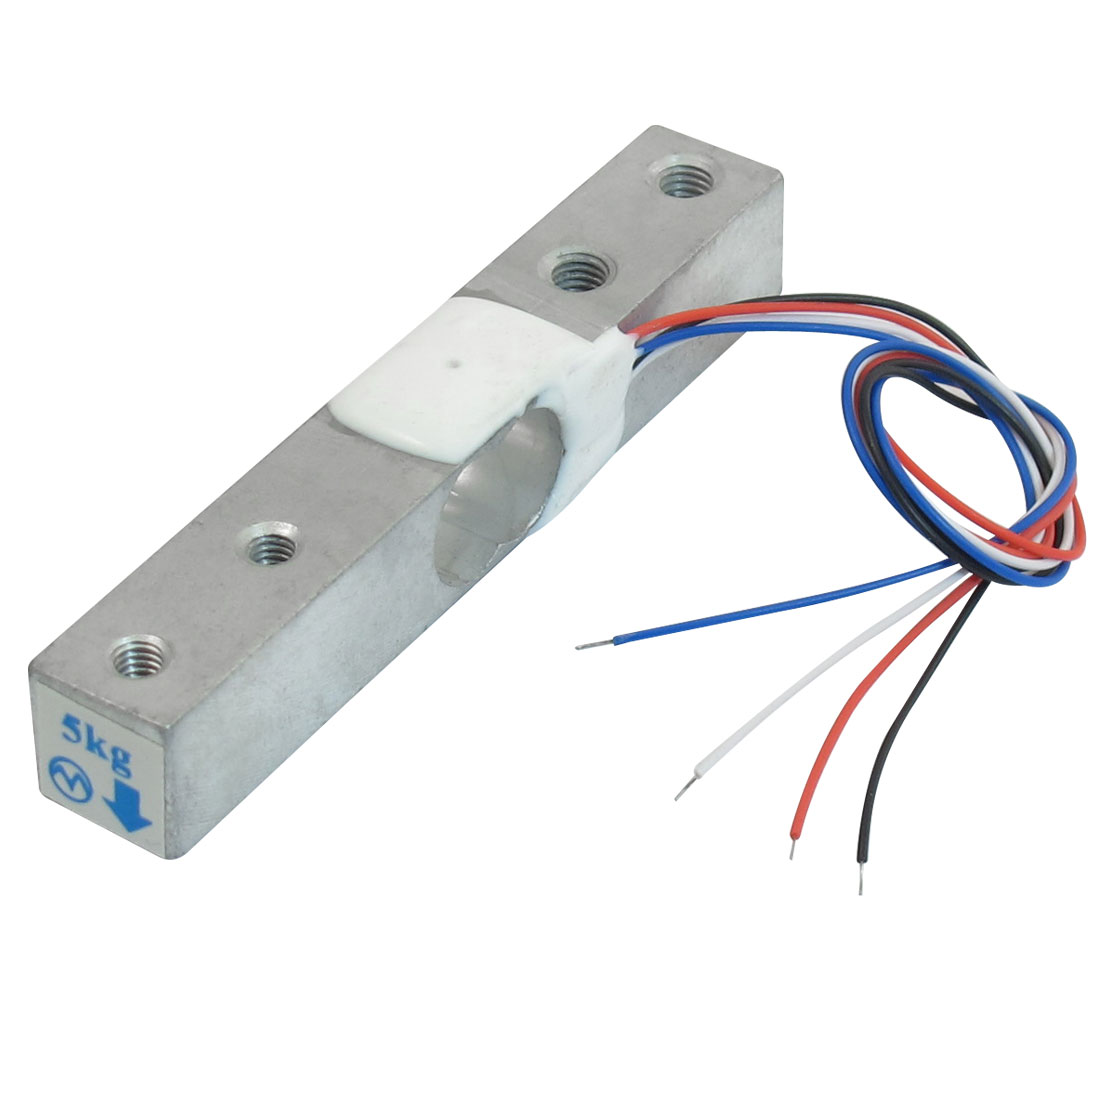 80mmx12.7mmx12.7mm Weighing Electronic Balance Wired Load Cell Sensor 0-5Kg(China (Mainland))